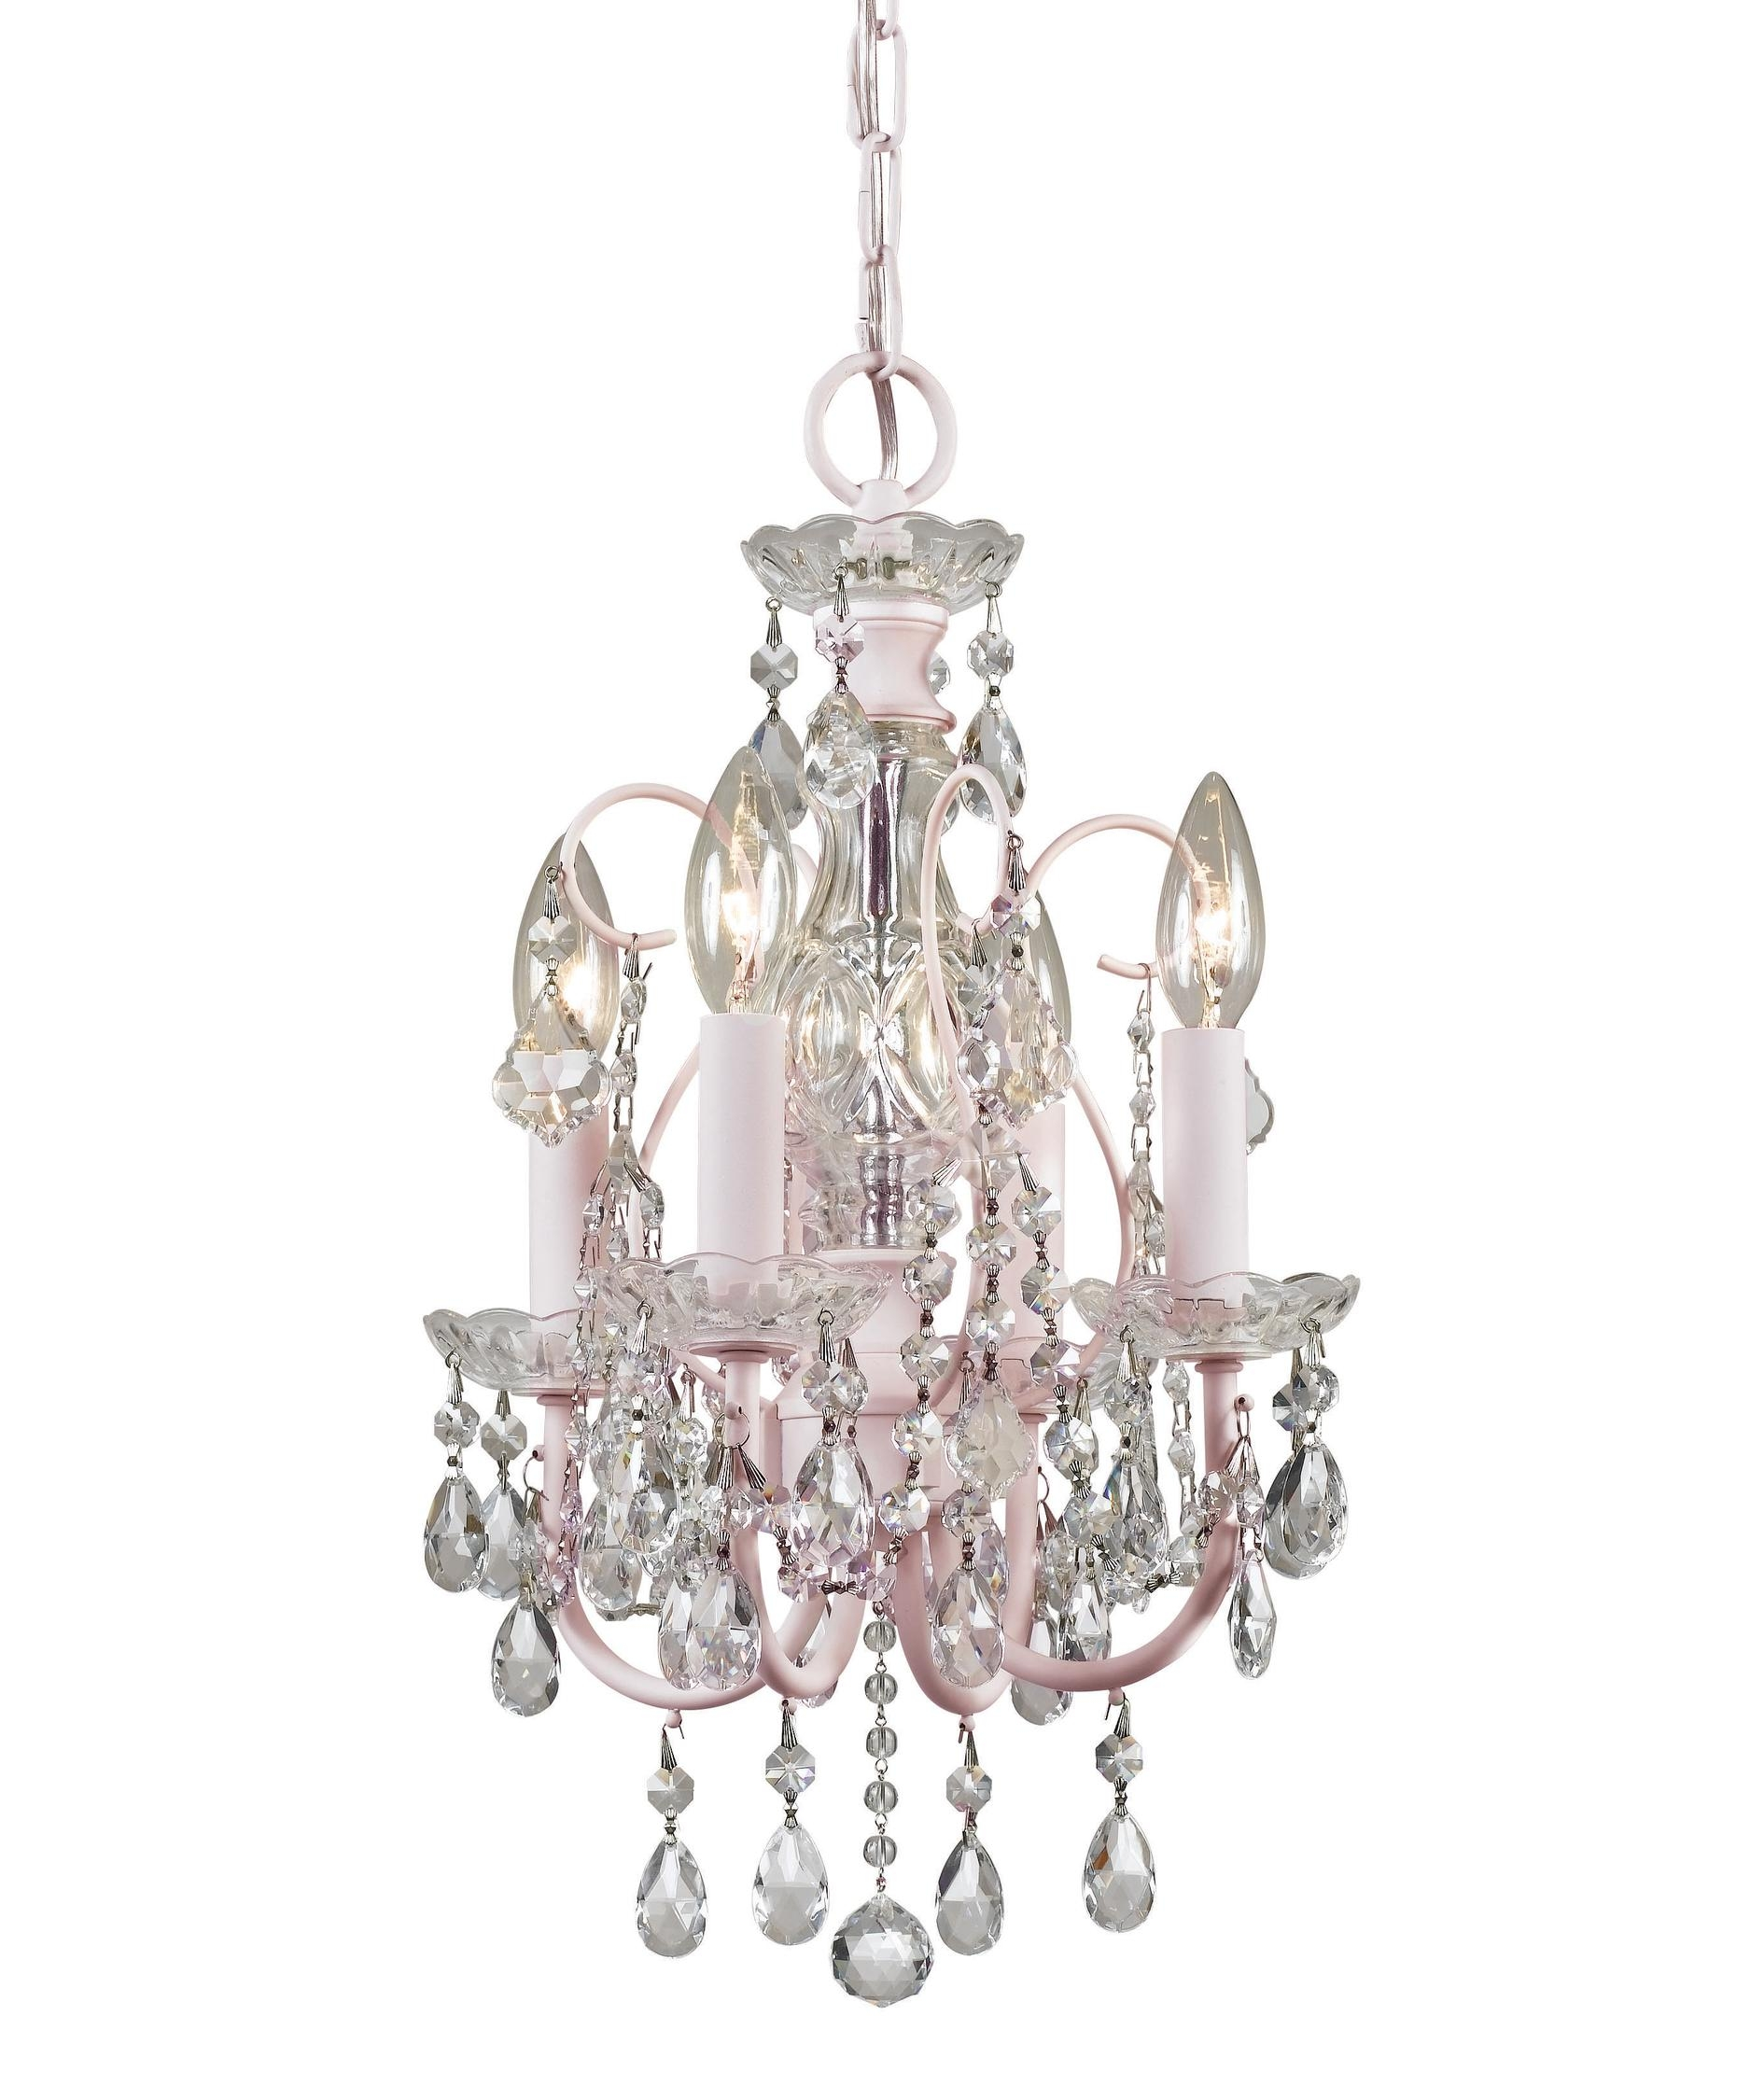 Crystorama 3224 Imperial 14 Inch Wide 4 Light Mini Chandelier Pertaining To Mini Crystal Chandeliers (Image 9 of 25)